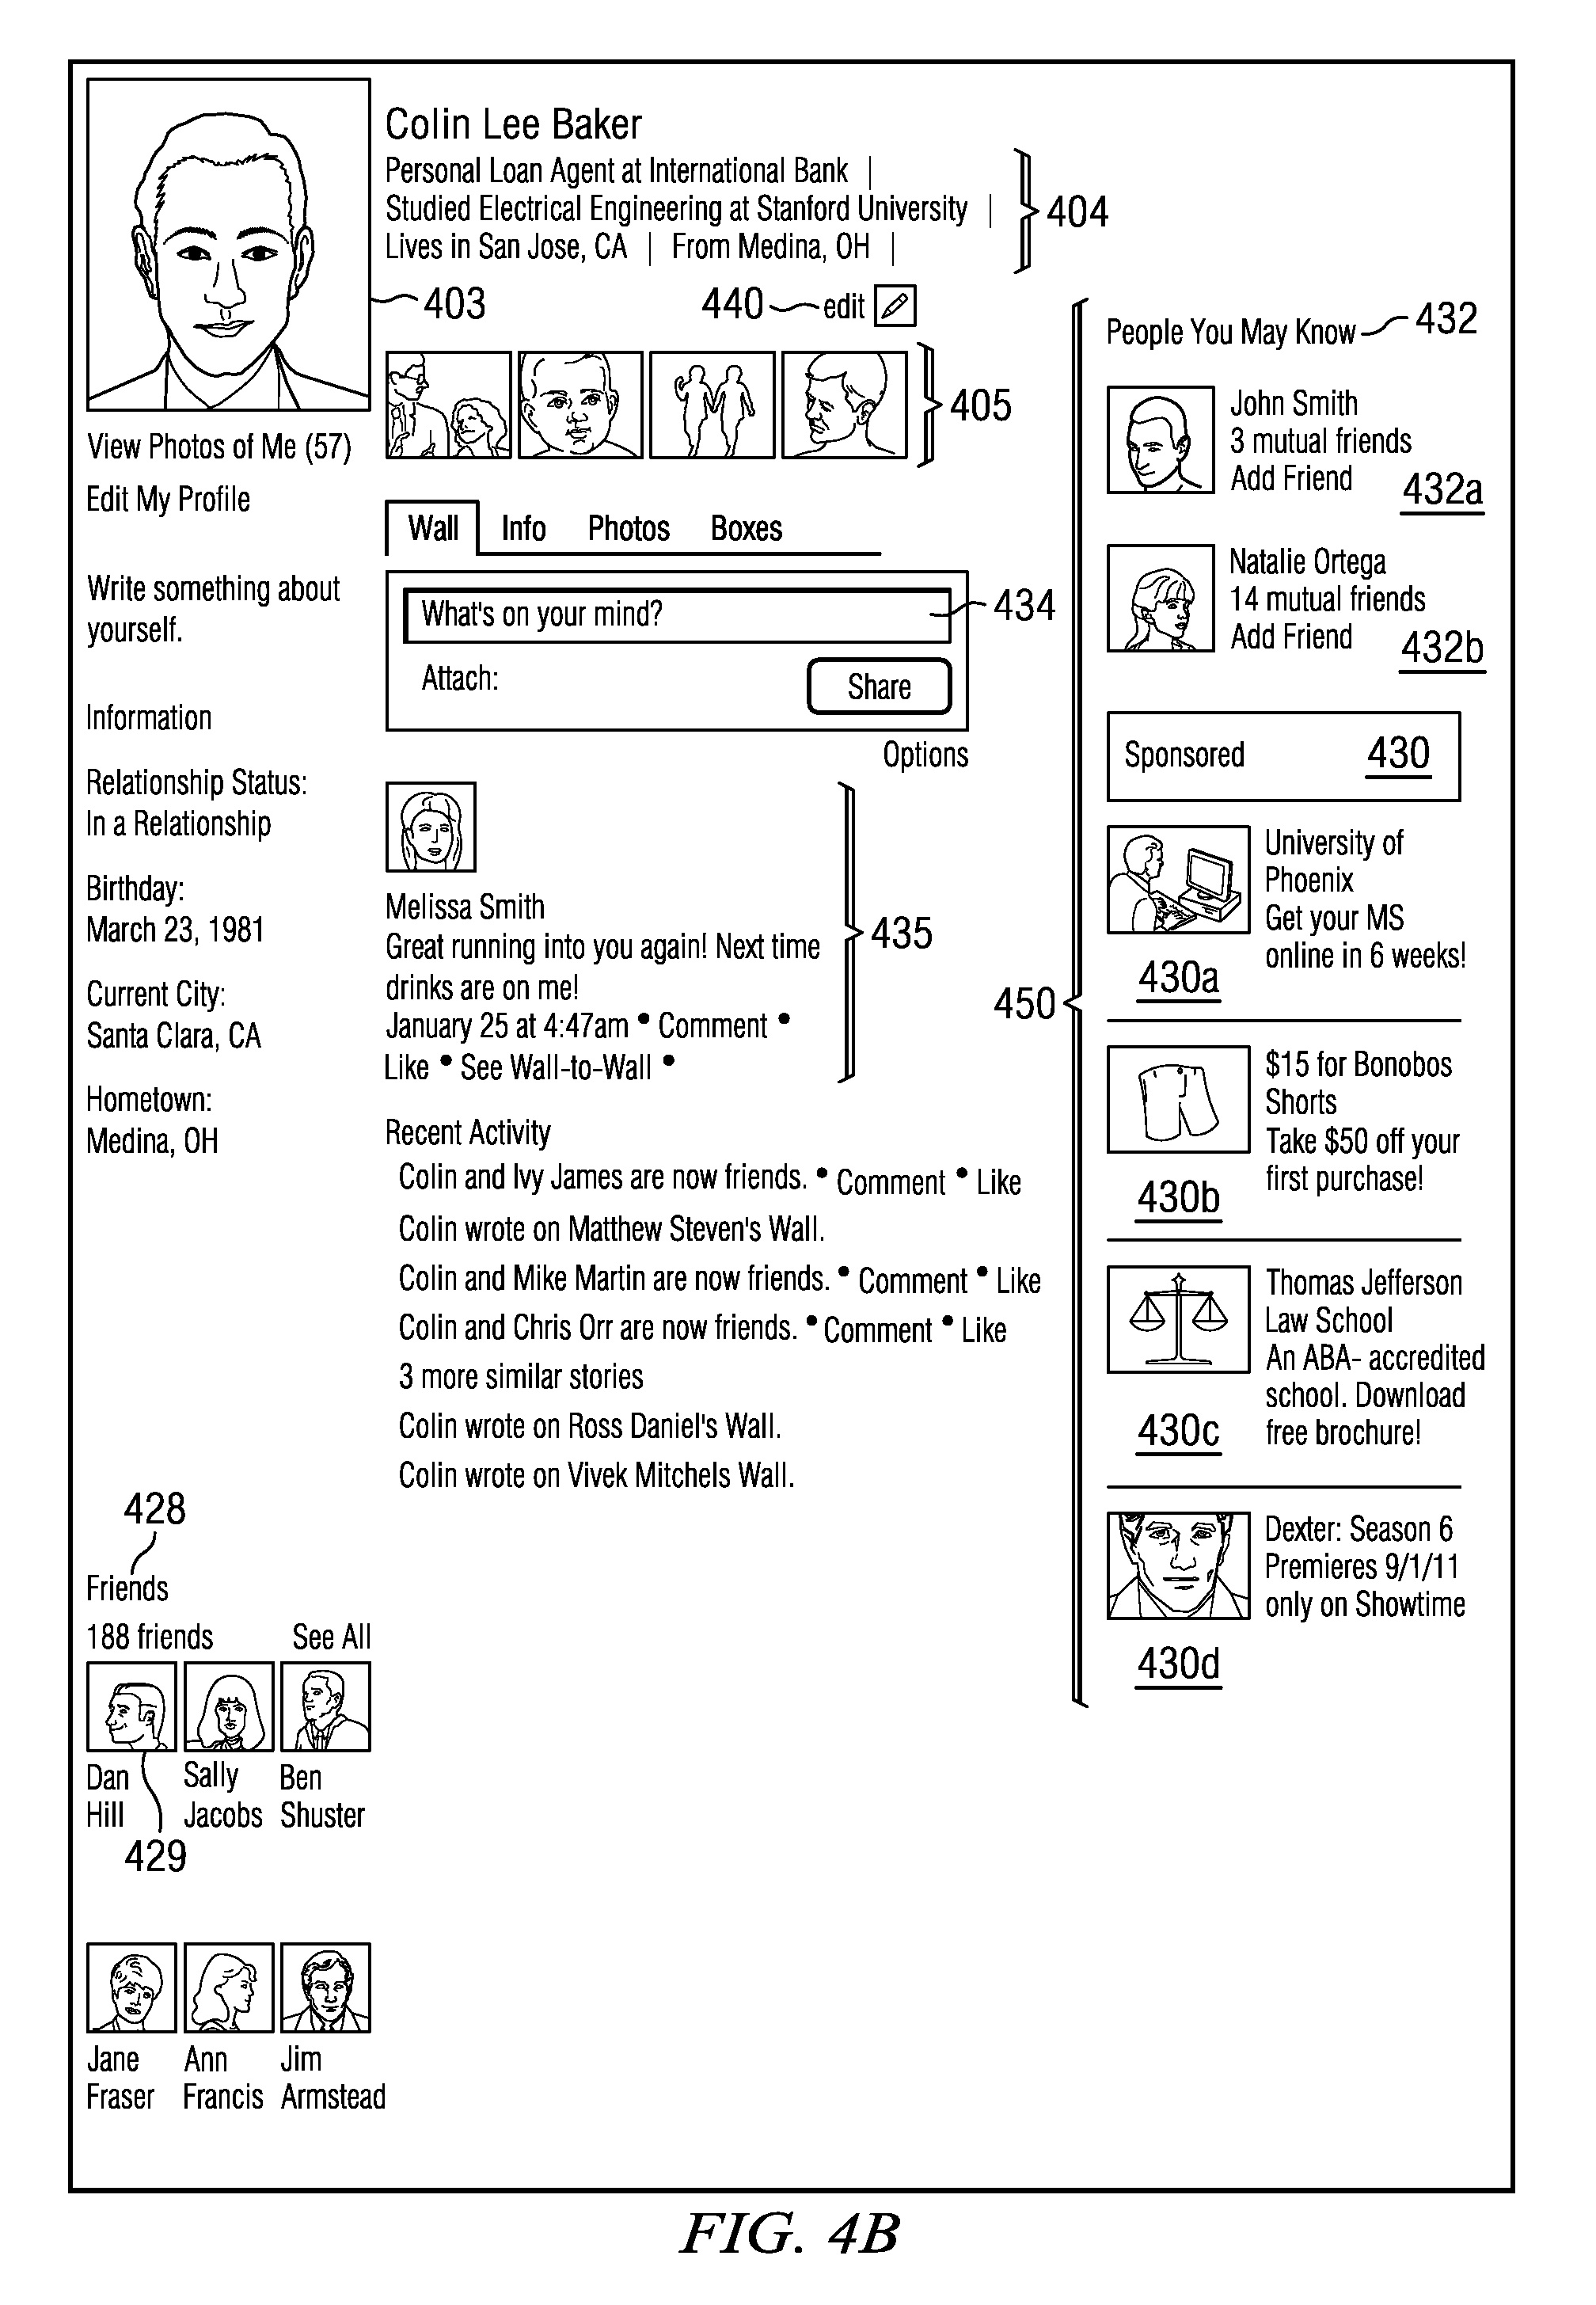 This is how the patent application depicts a profile with ads...